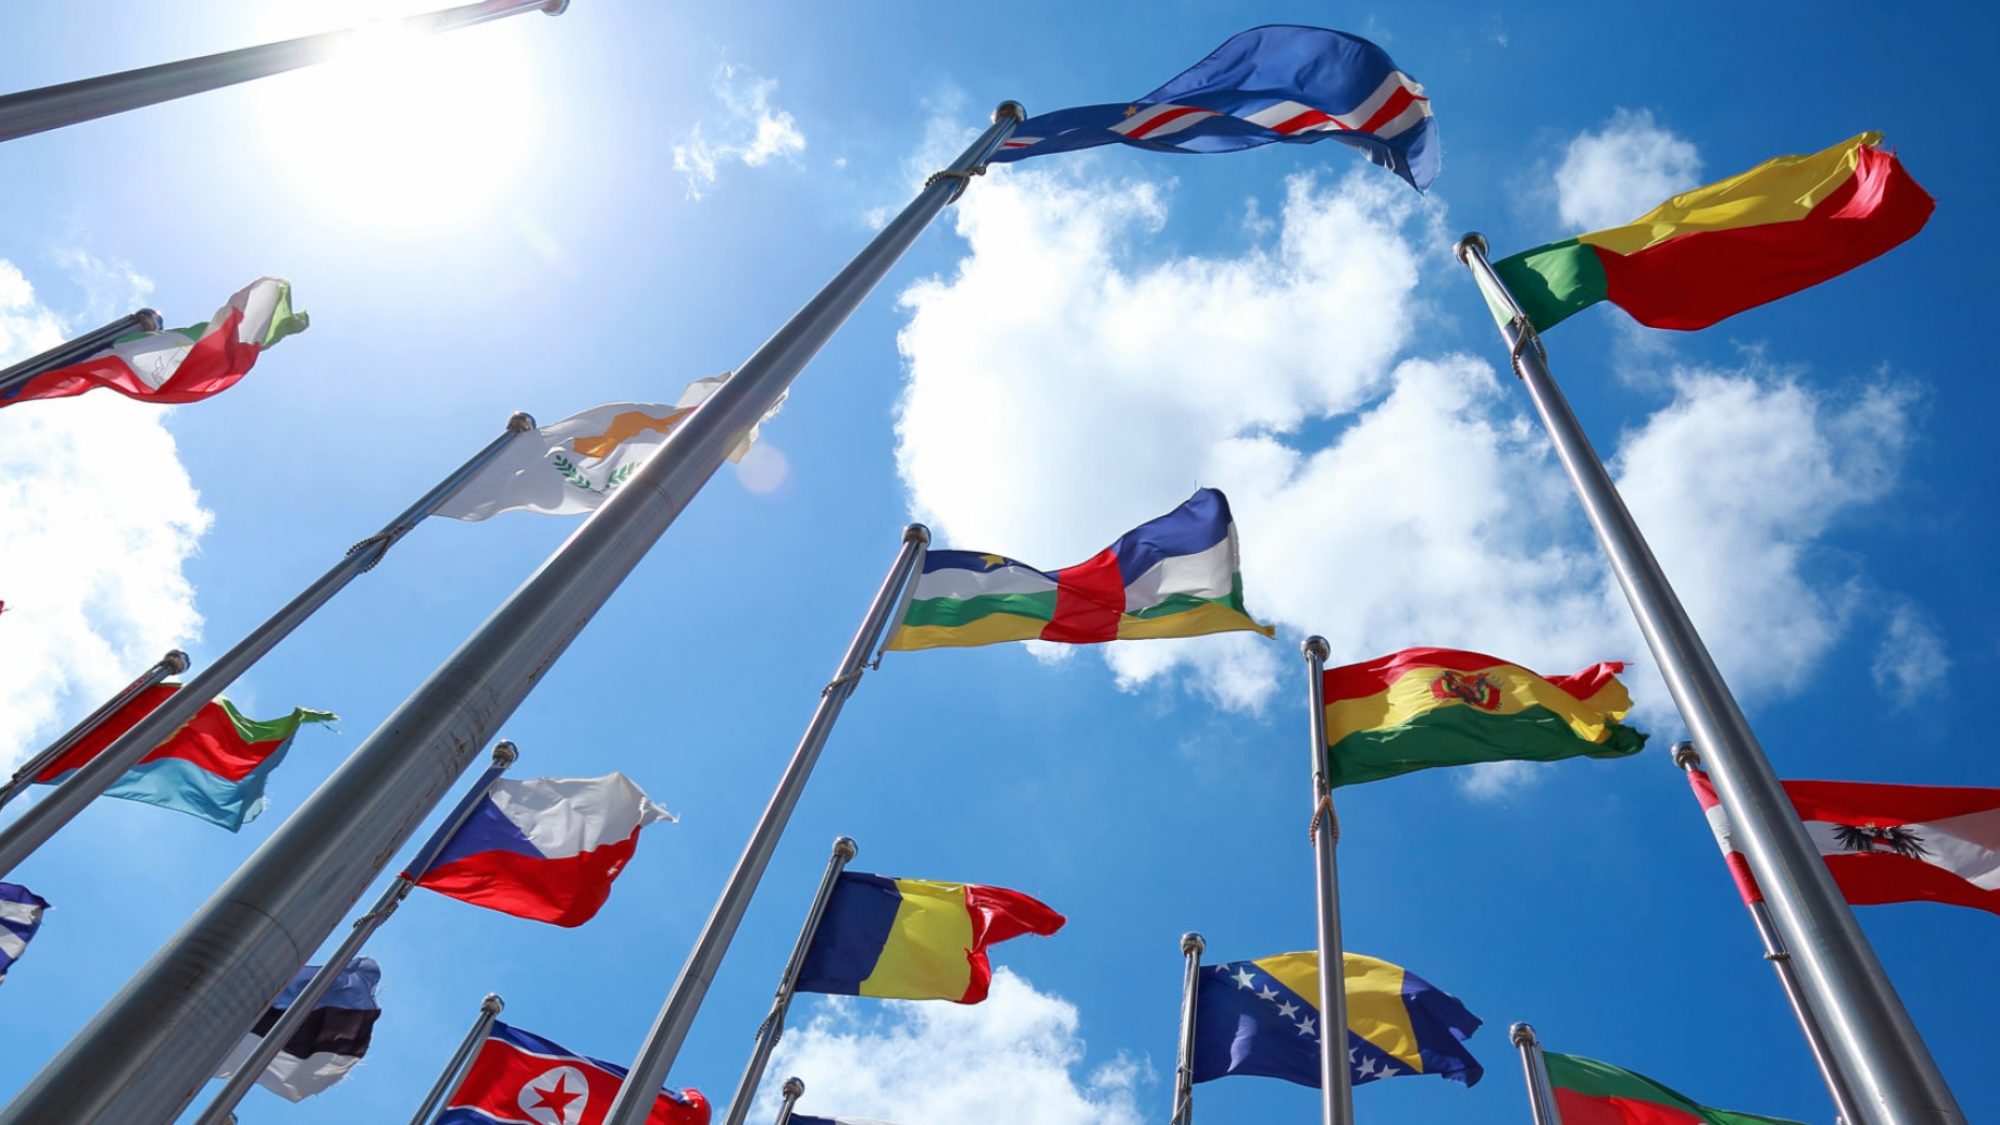 Flags and diplomacy